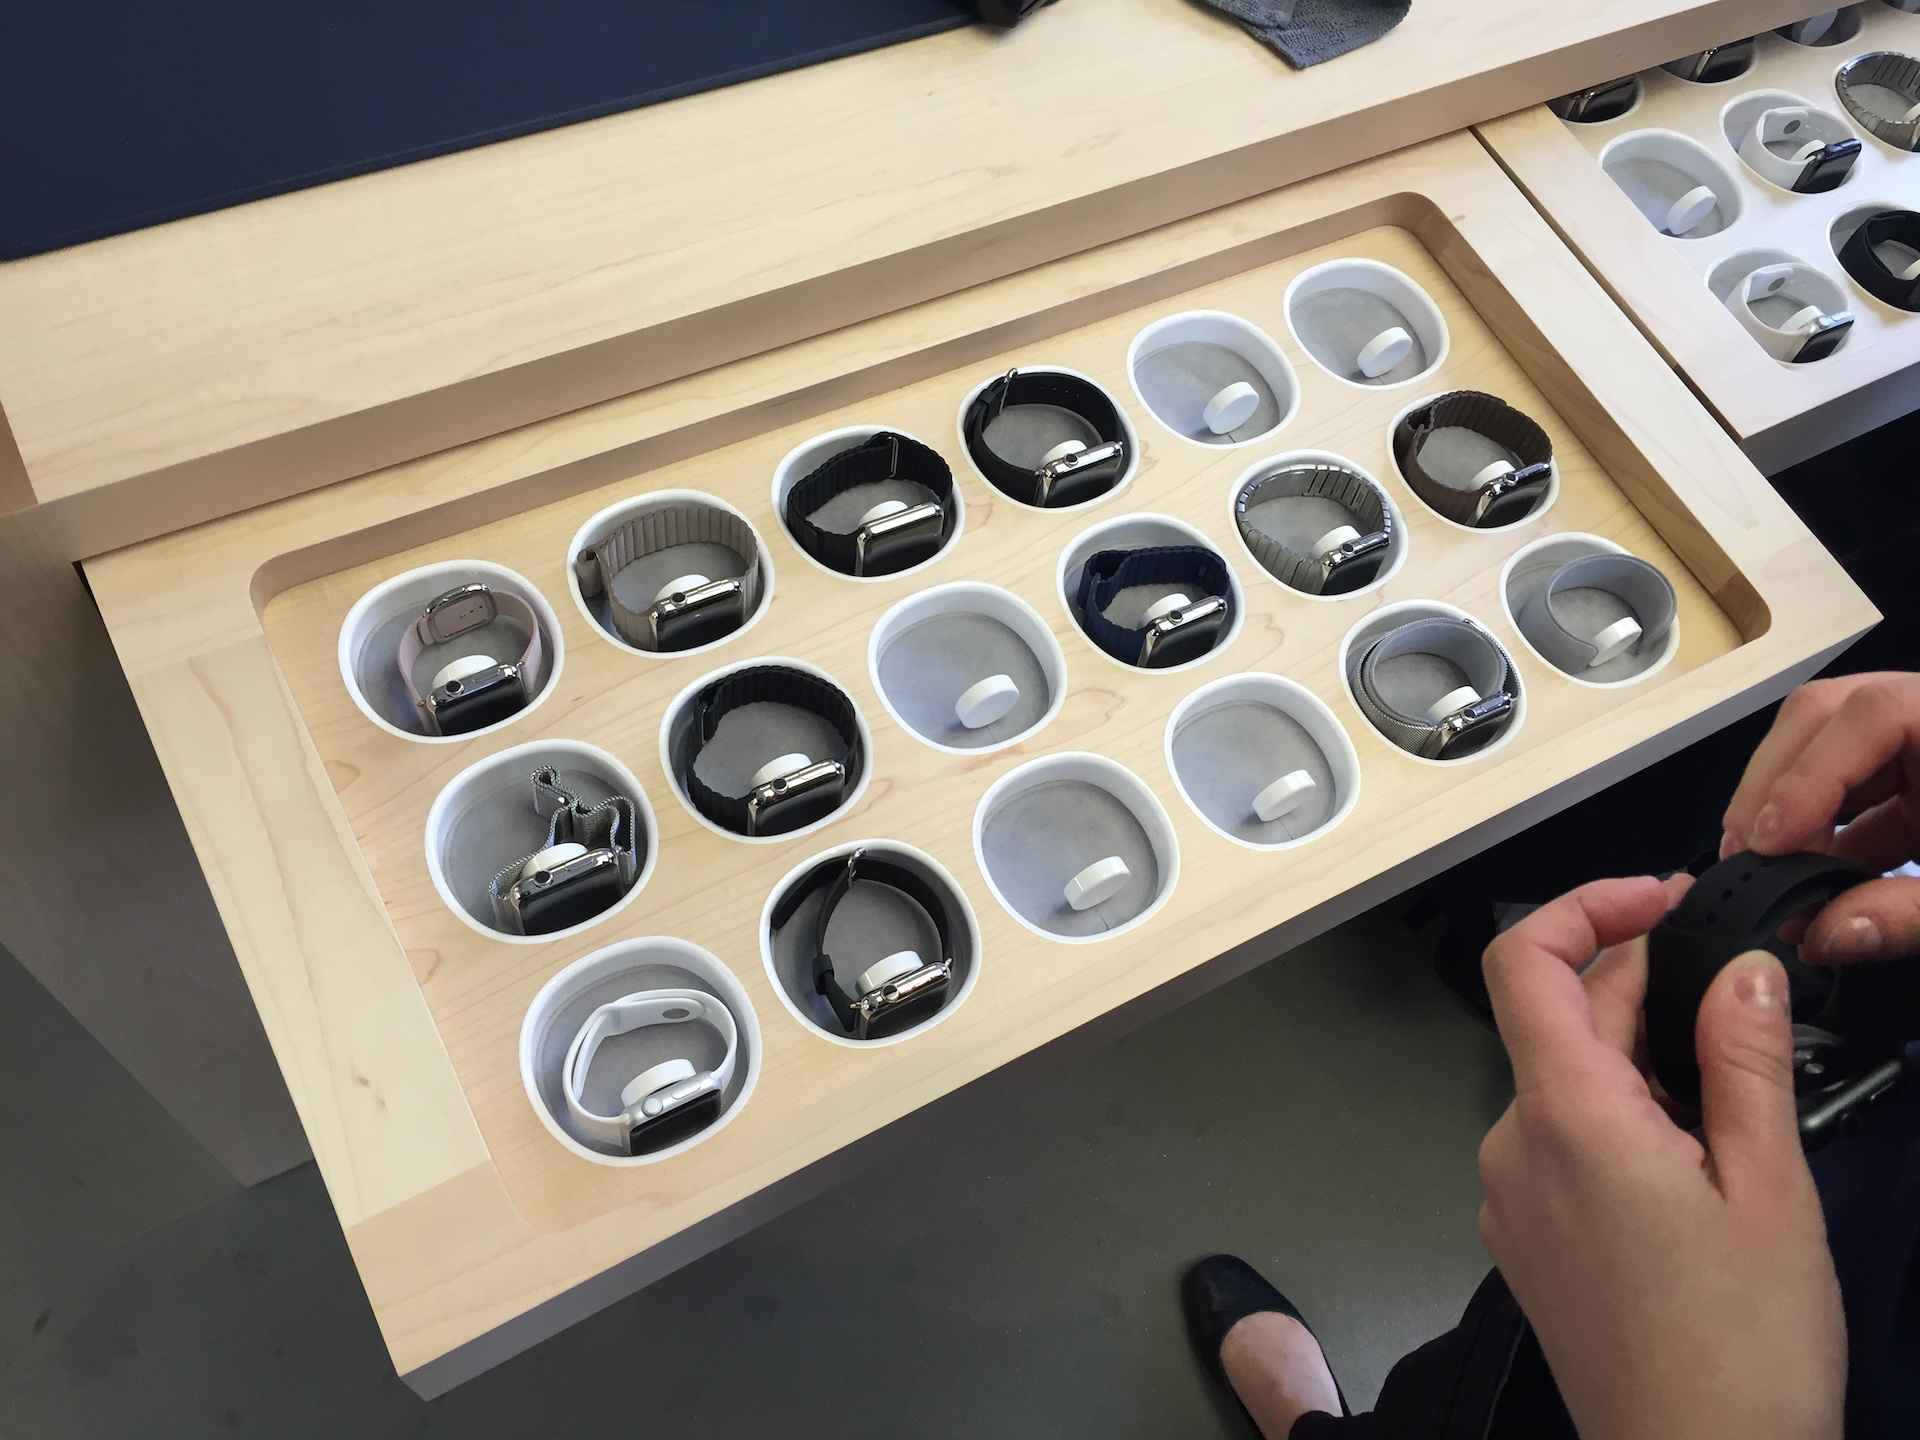 Apple Watches are all kept in a tray that employees unlock with their iPhone point-of-sale systems.